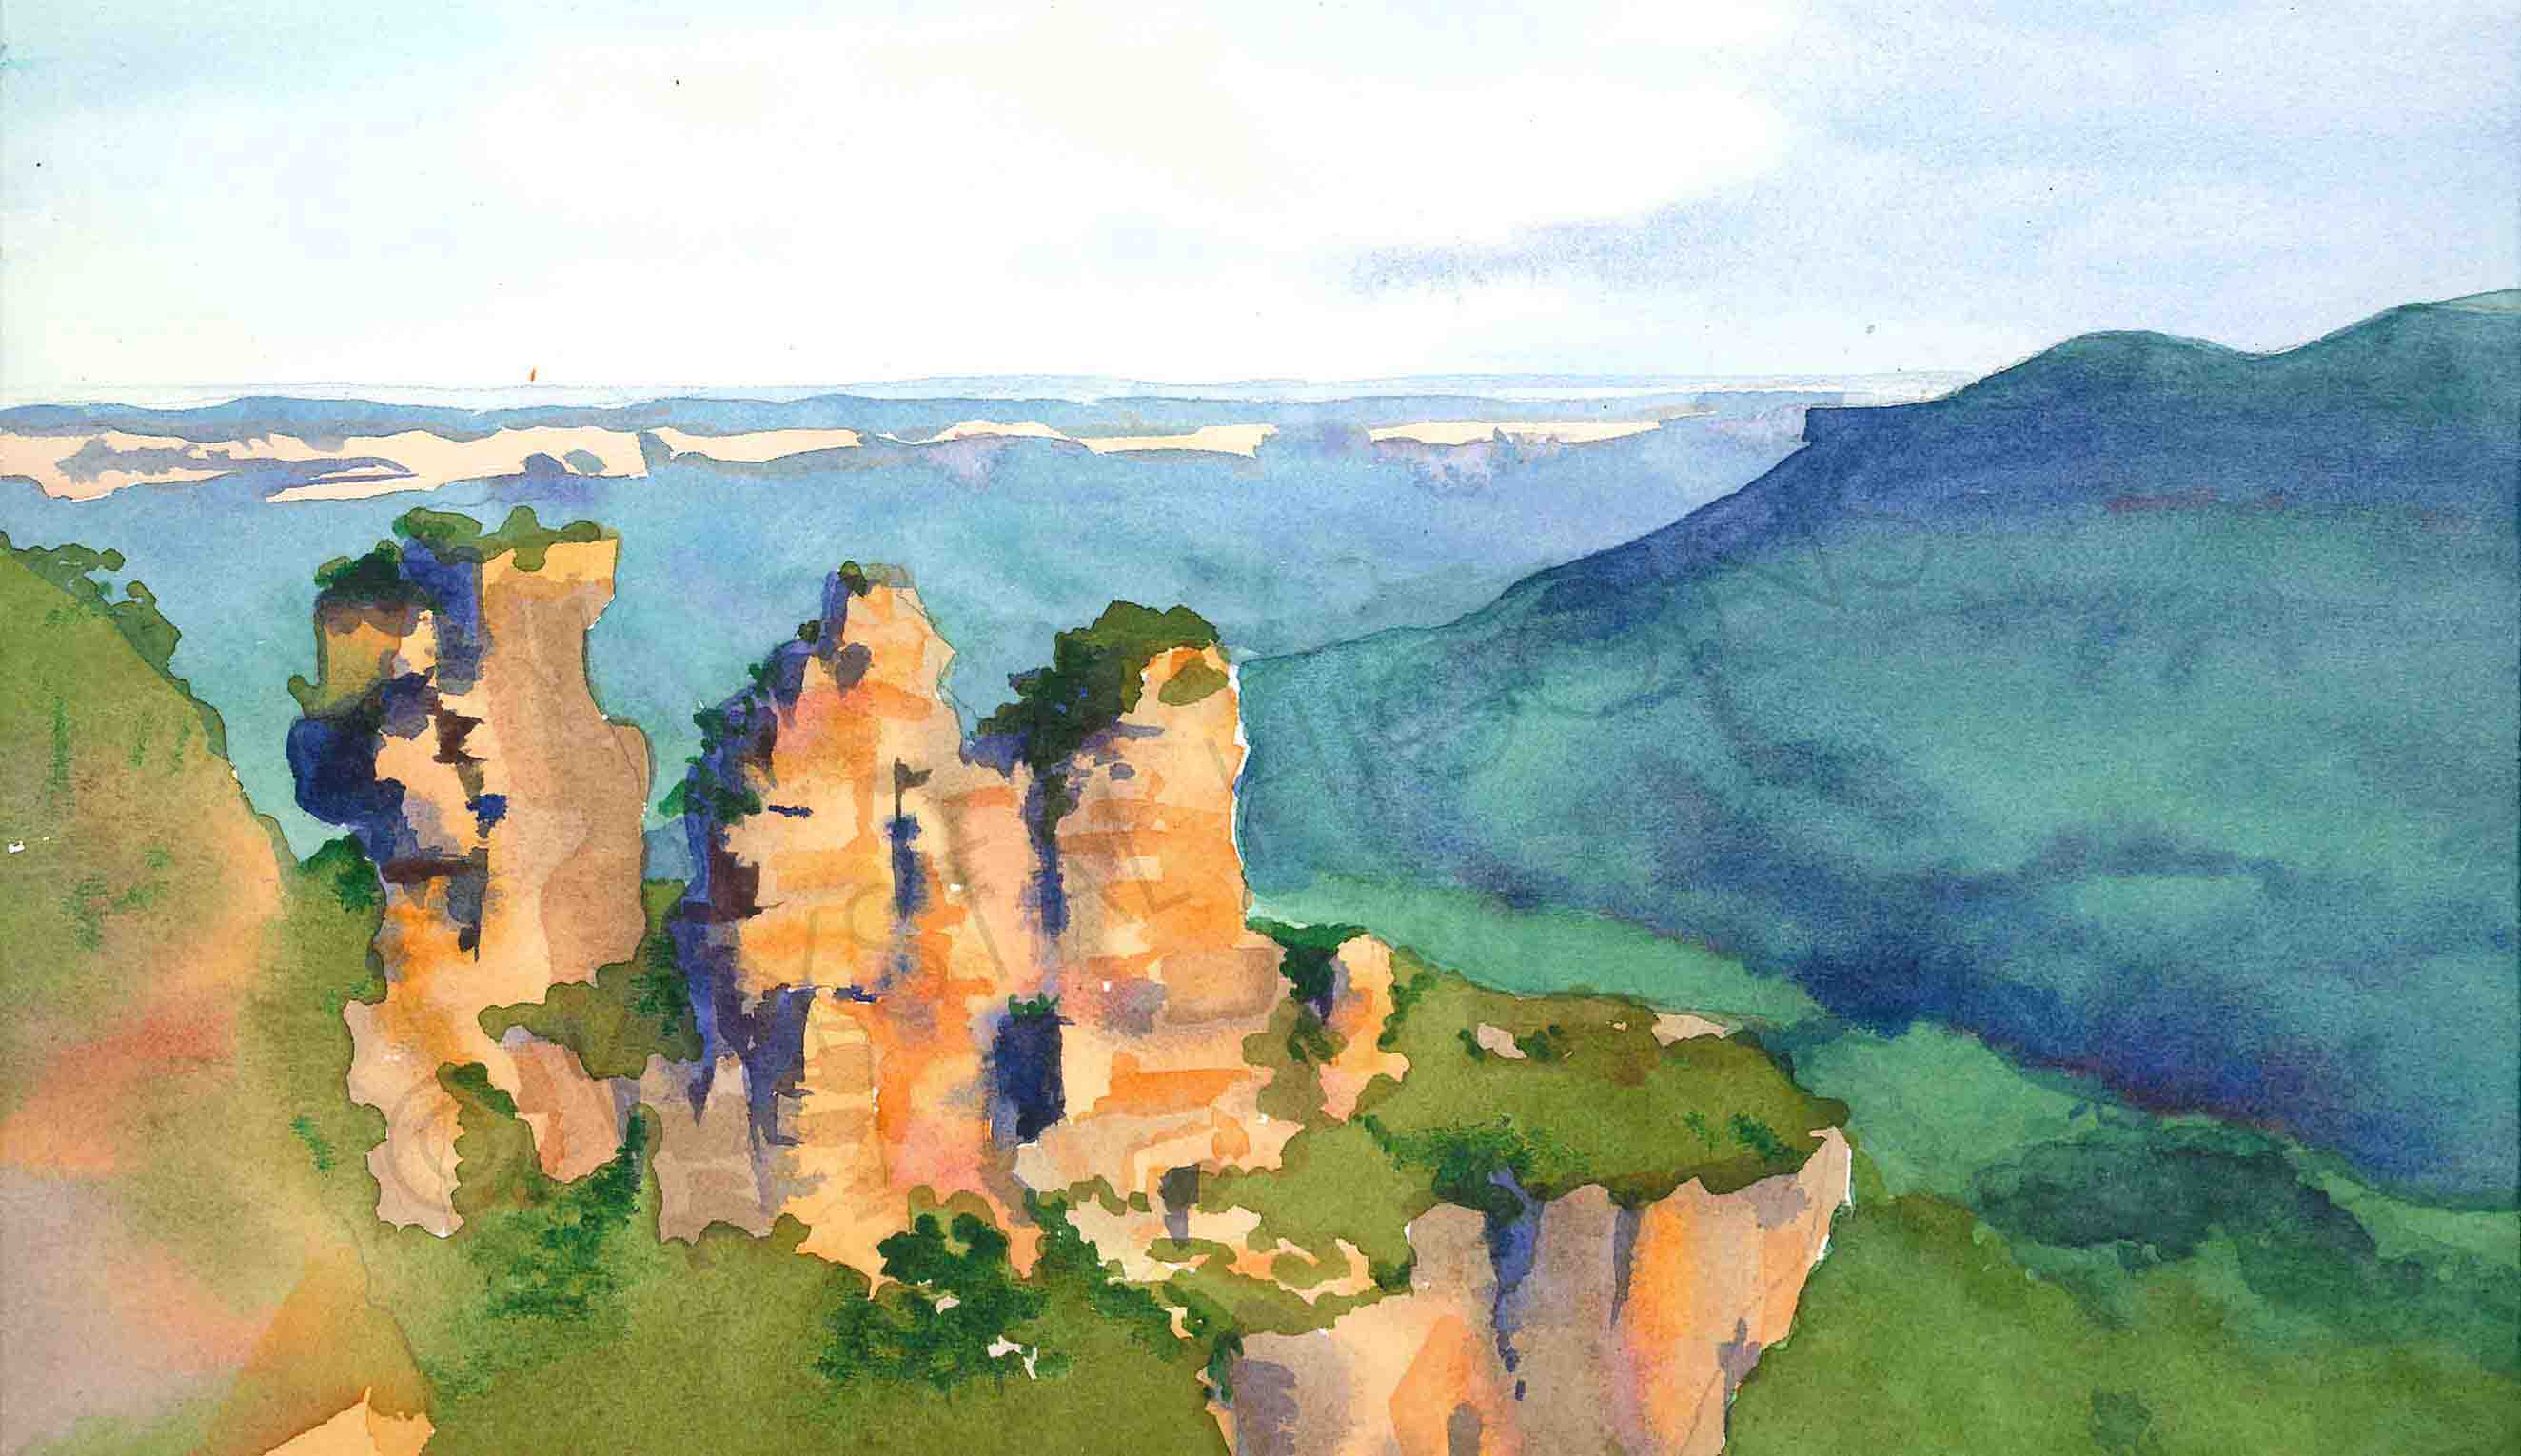 A scan of a painting of the Three Sisters in the Blue Mountains, Australia